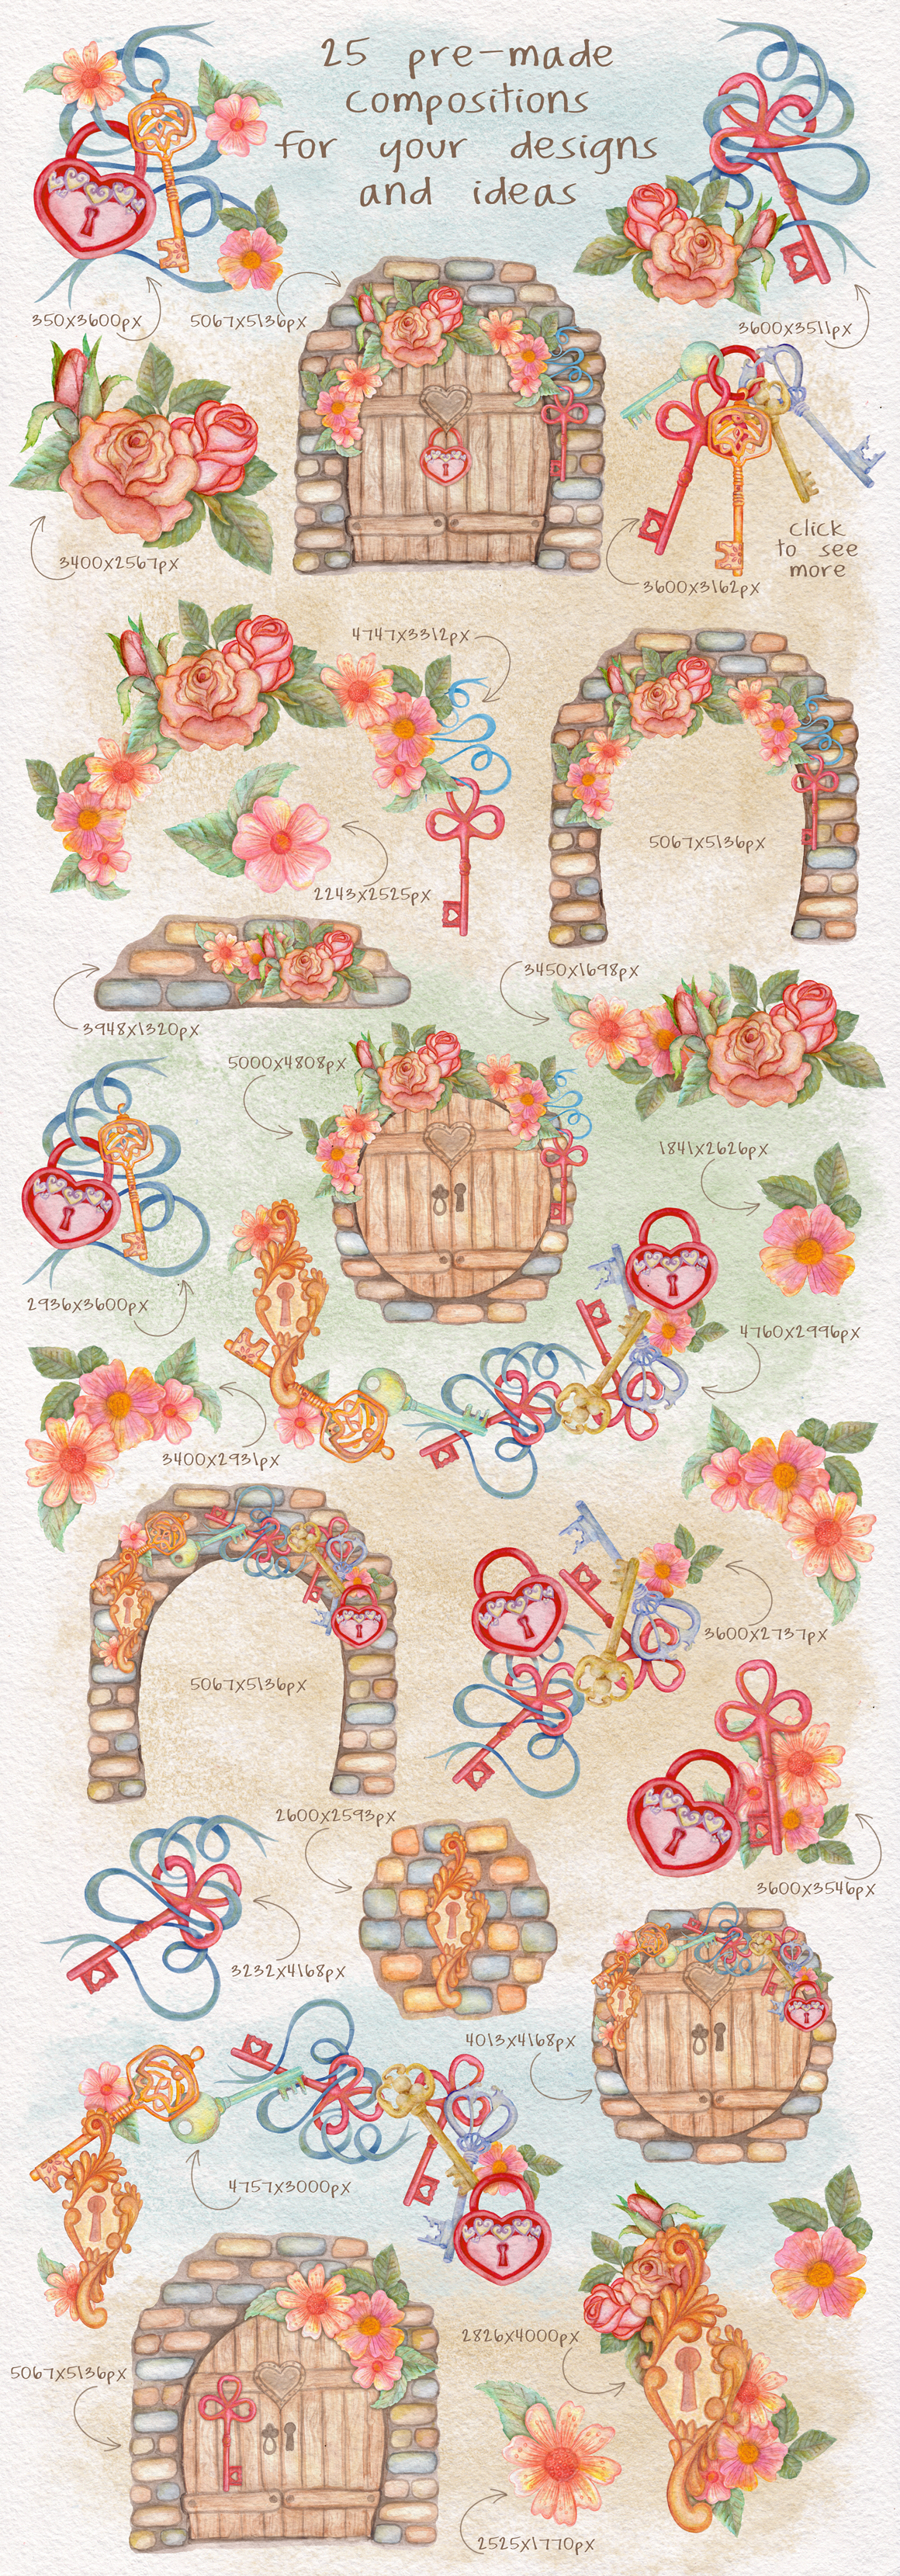 Home Sweet Home. Keys, floral watercolor wonderland collection example image 2